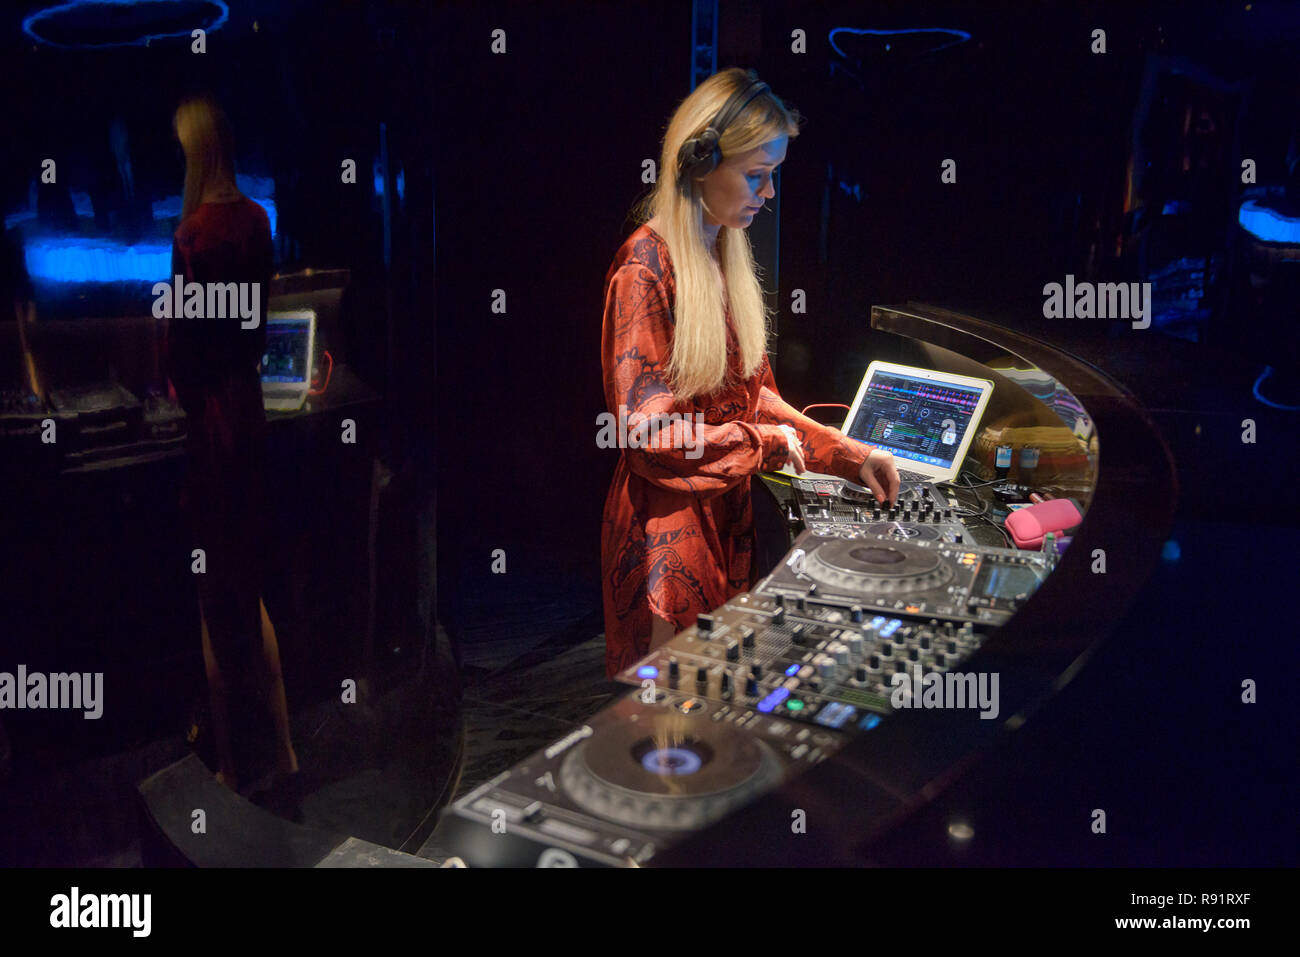 International DJ, Bangkok, Thailand - Stock Image